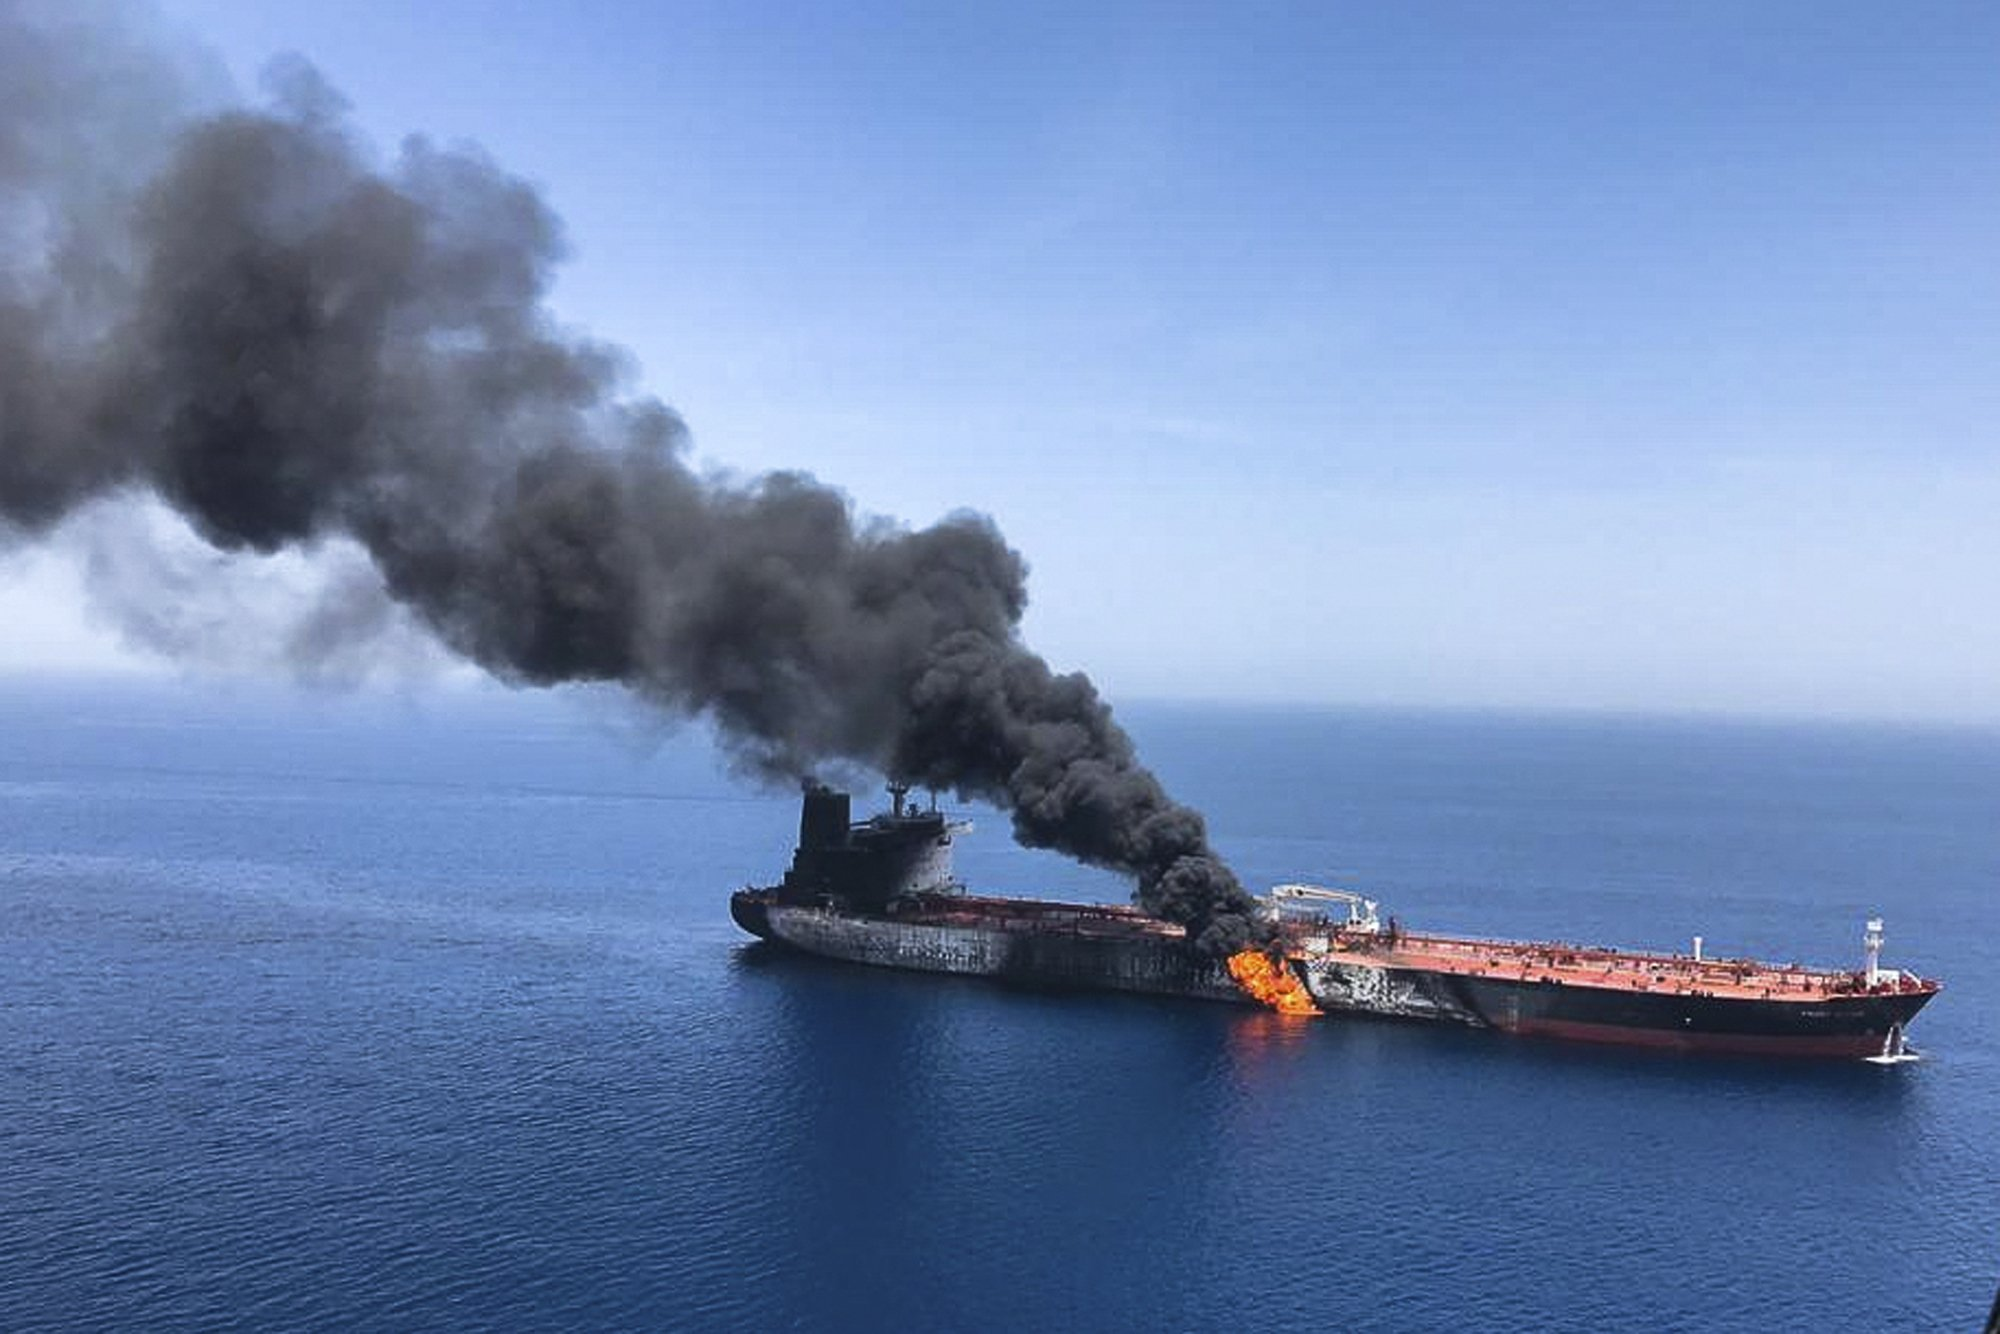 Did the Neocons just torpedo the Iranian-Japan diplomacy mission by bombing 2 ships with Japan-related cargo?